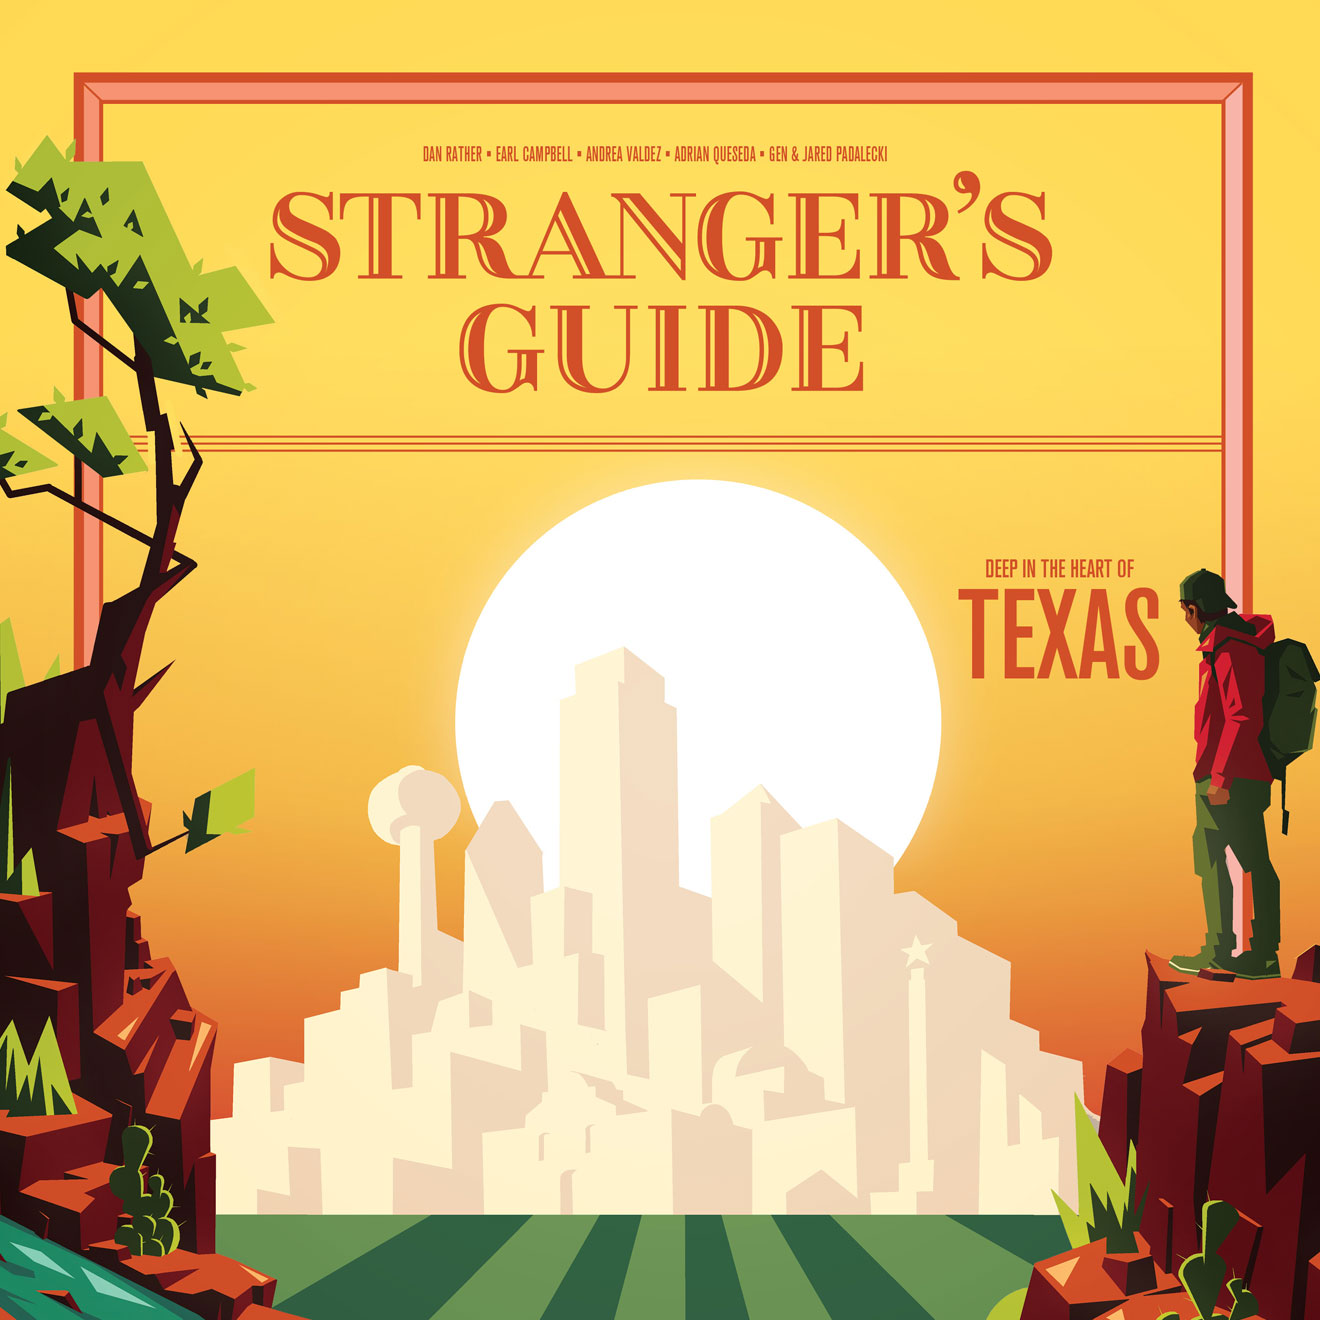 About Stranger's Guide